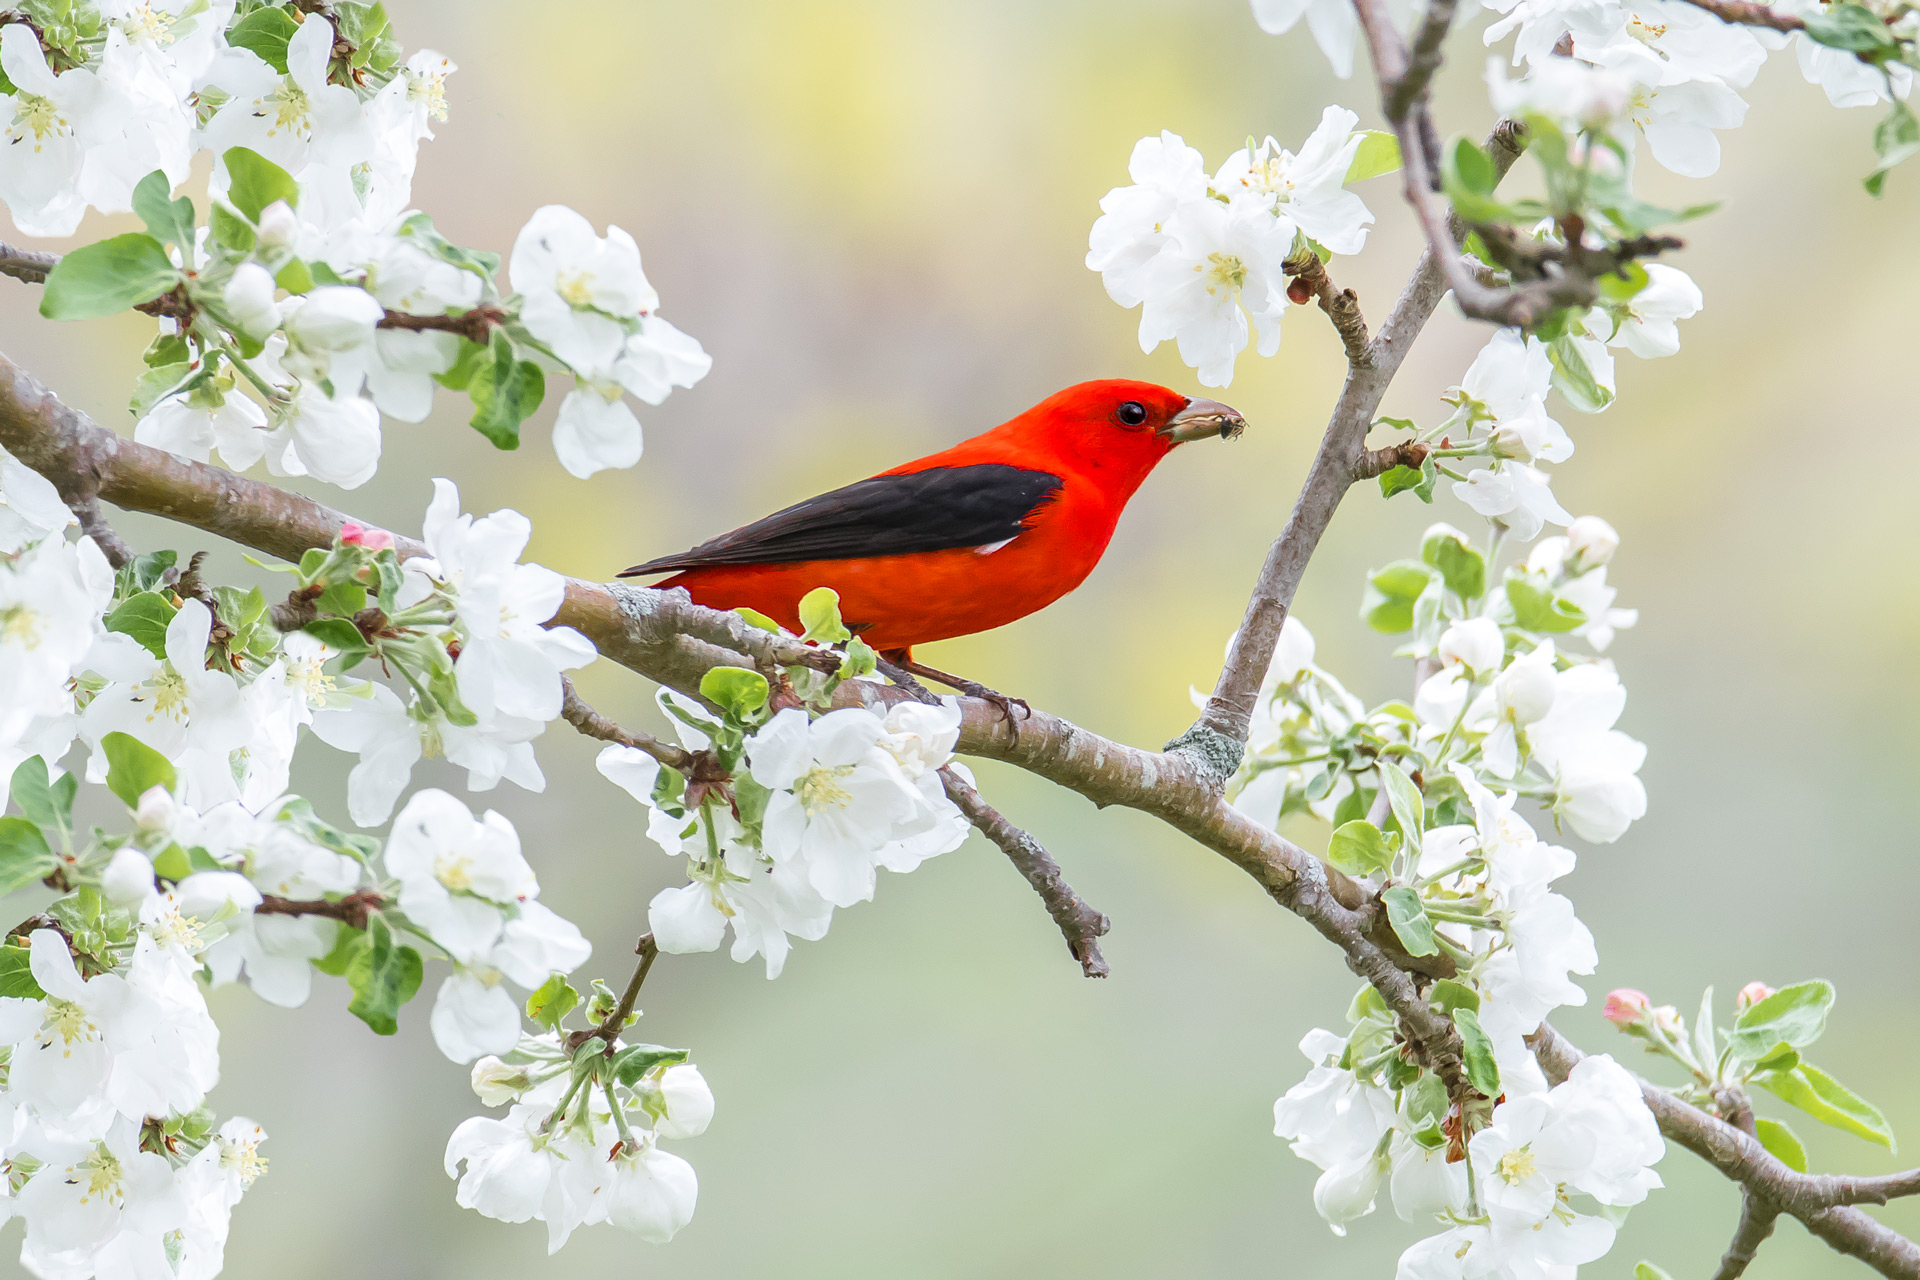 Our Scarlet Tanager Photo in Birds & Blooms Magazine